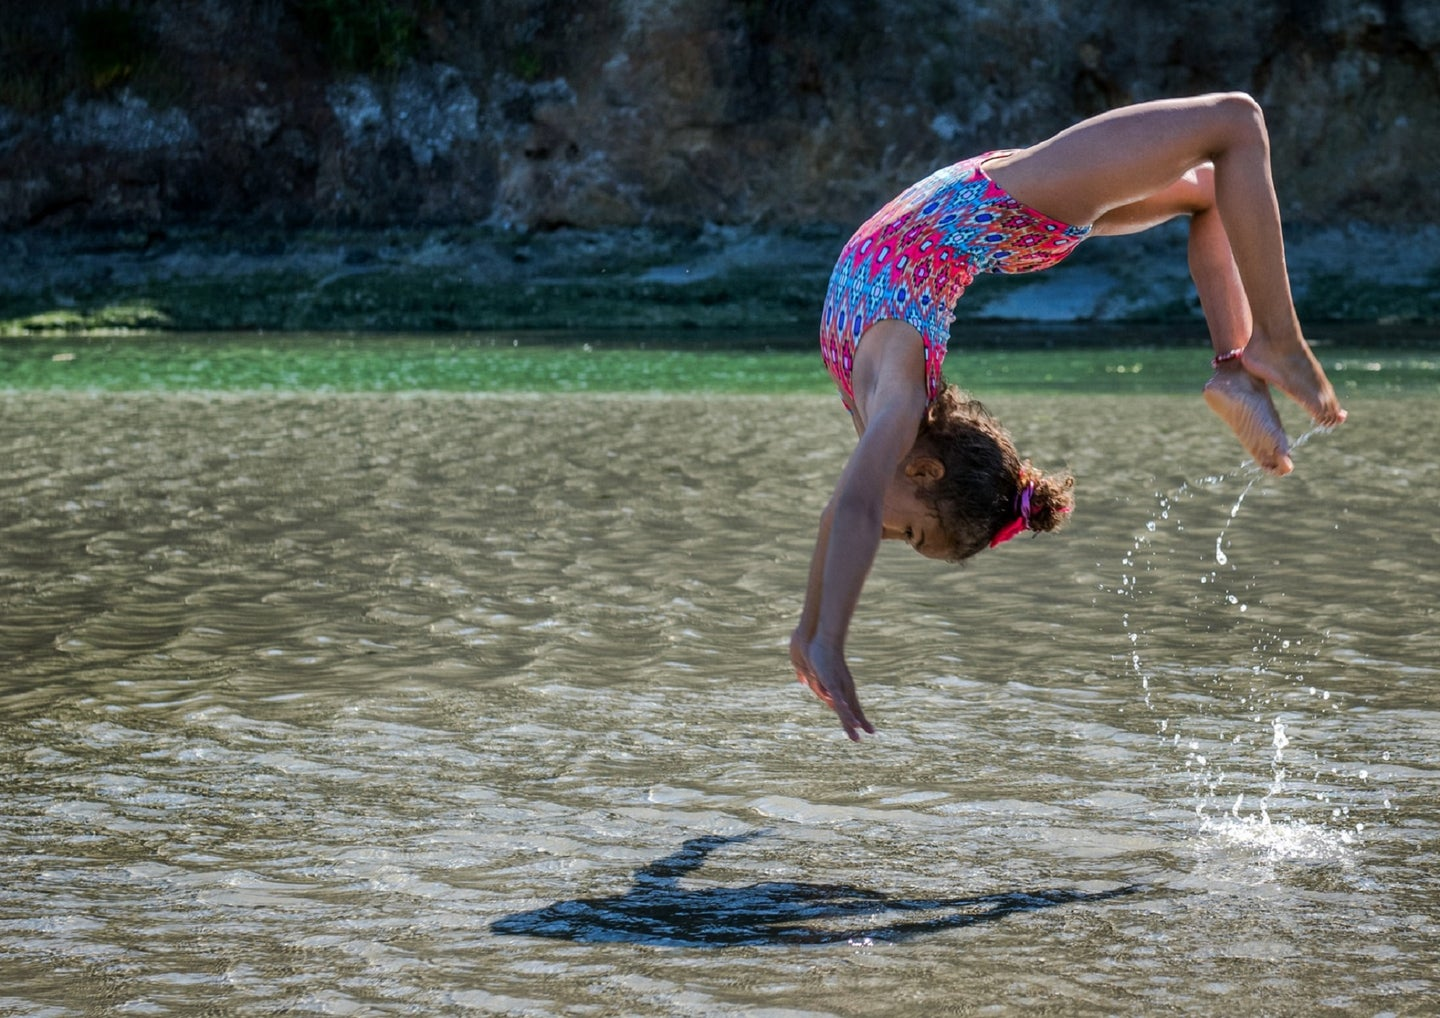 Kid in pink bathing suit doing a flip in a lake